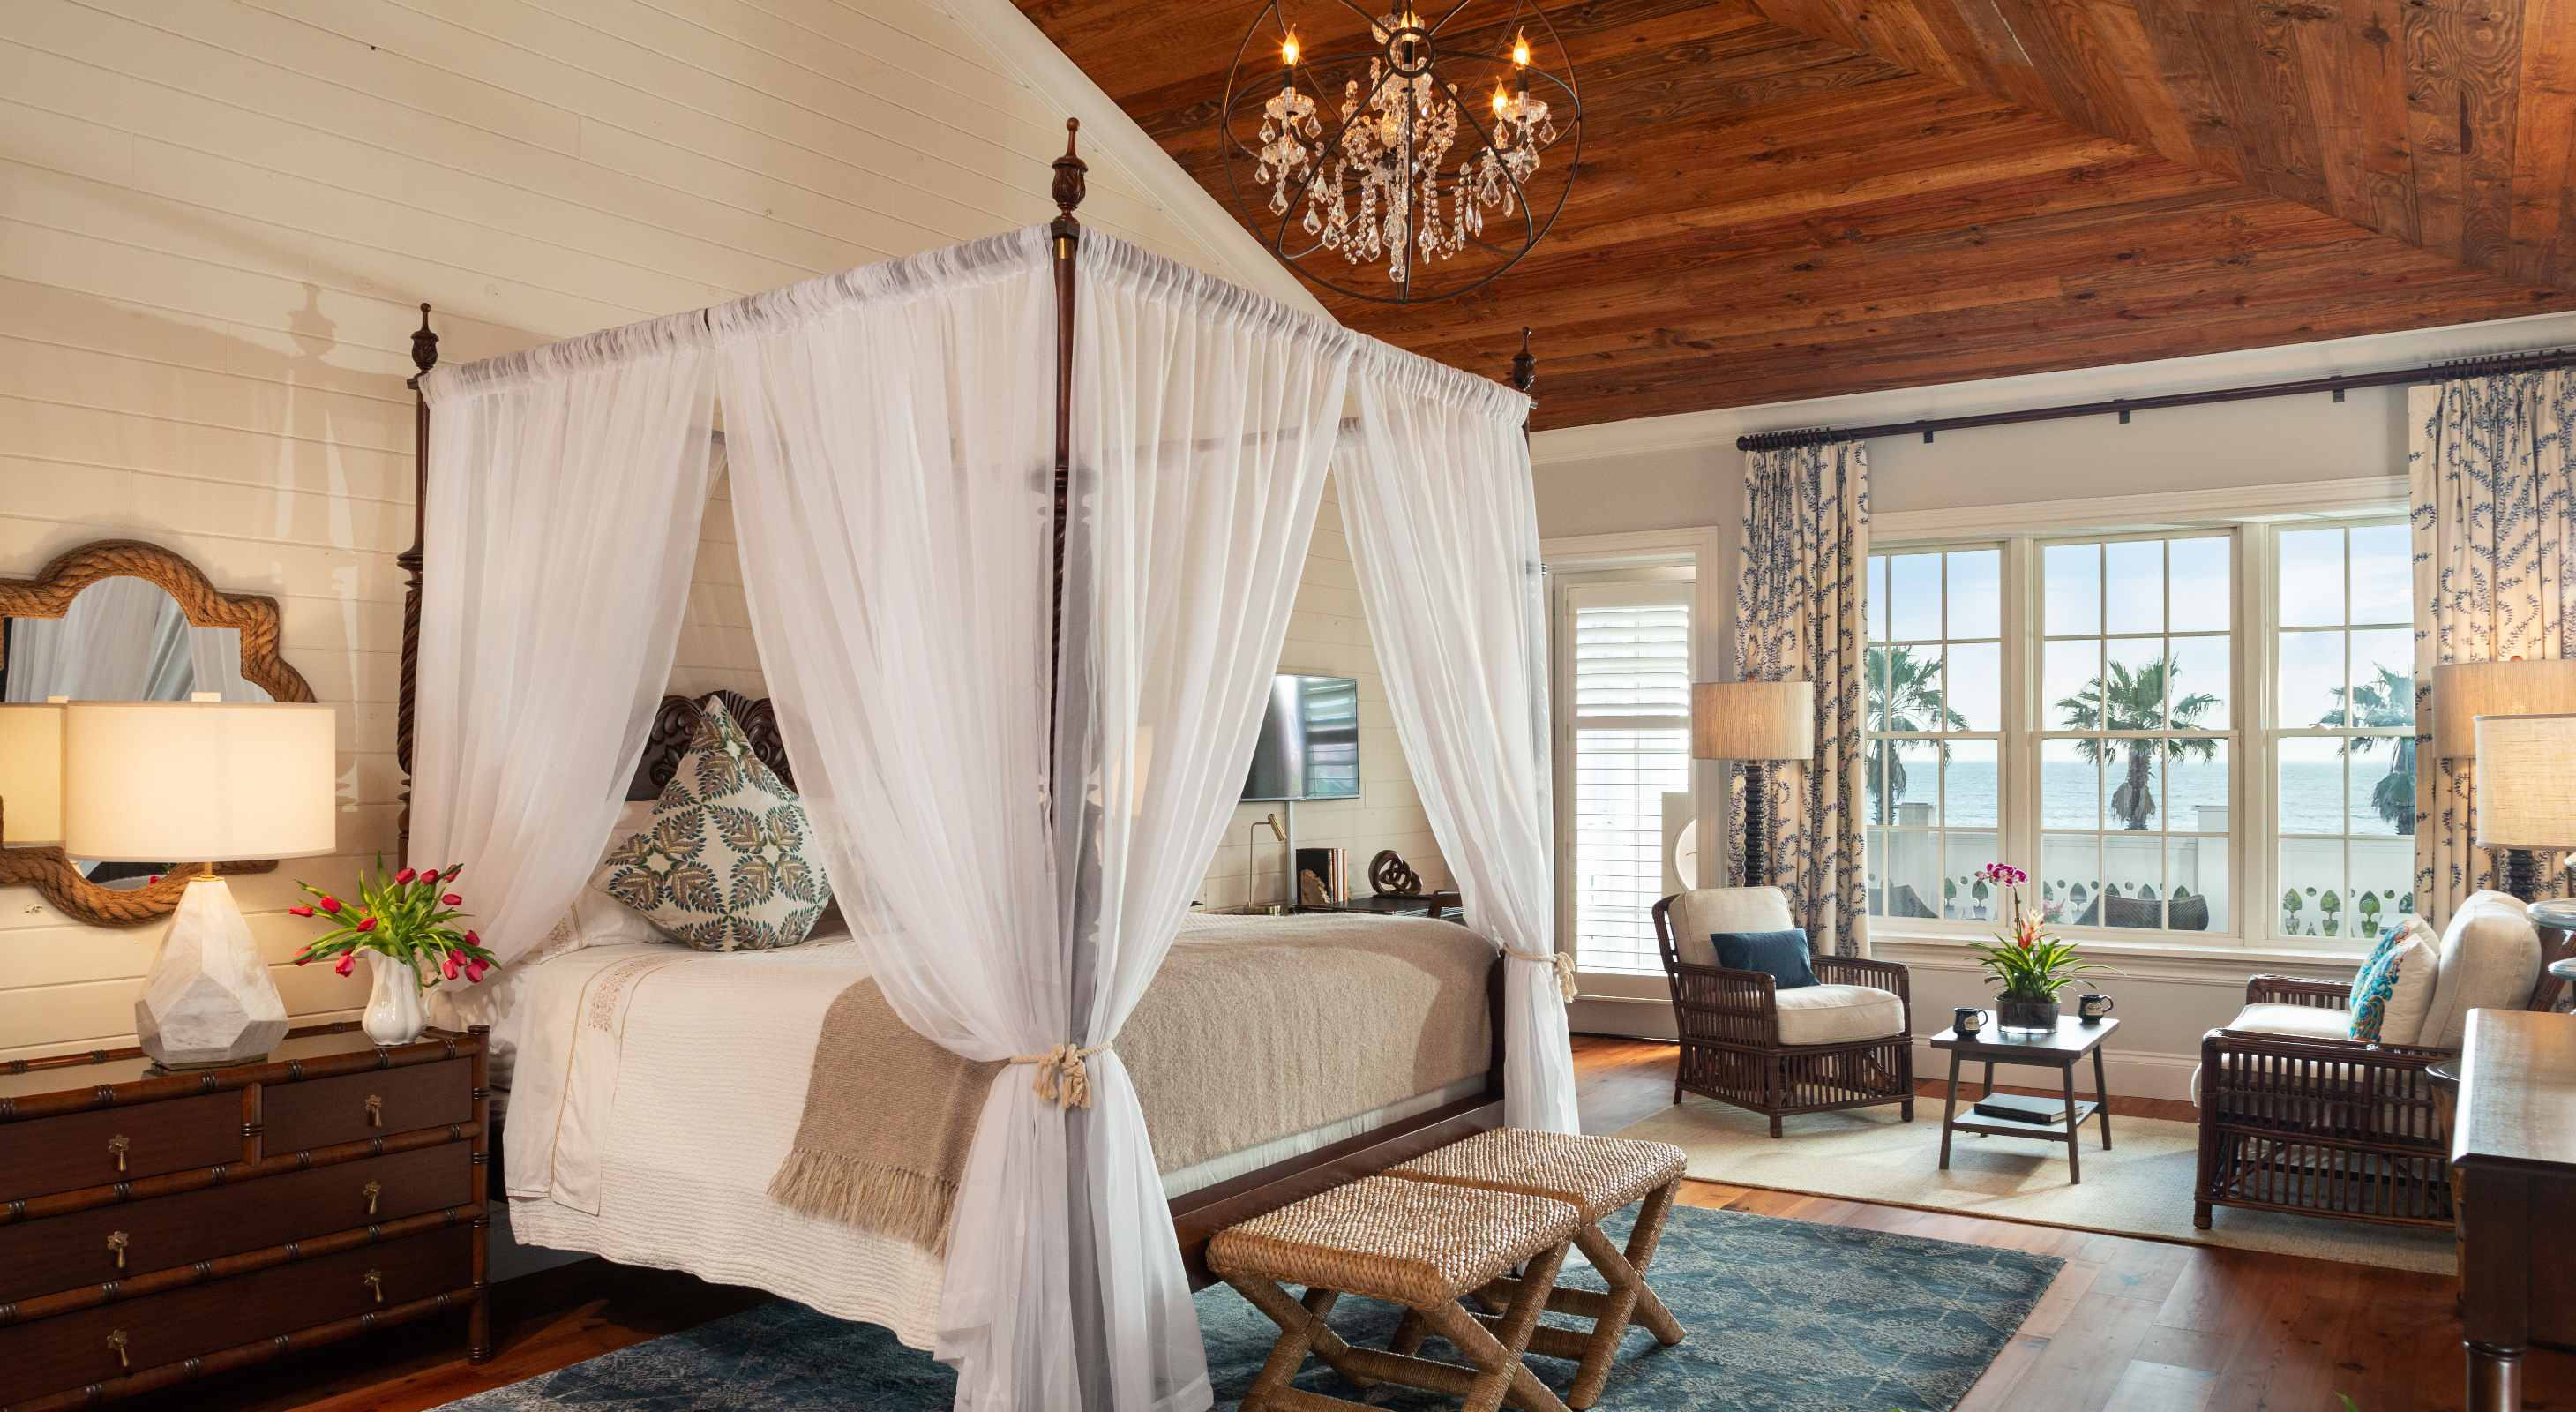 luxury guest room with four poster bed and windows with palm trees